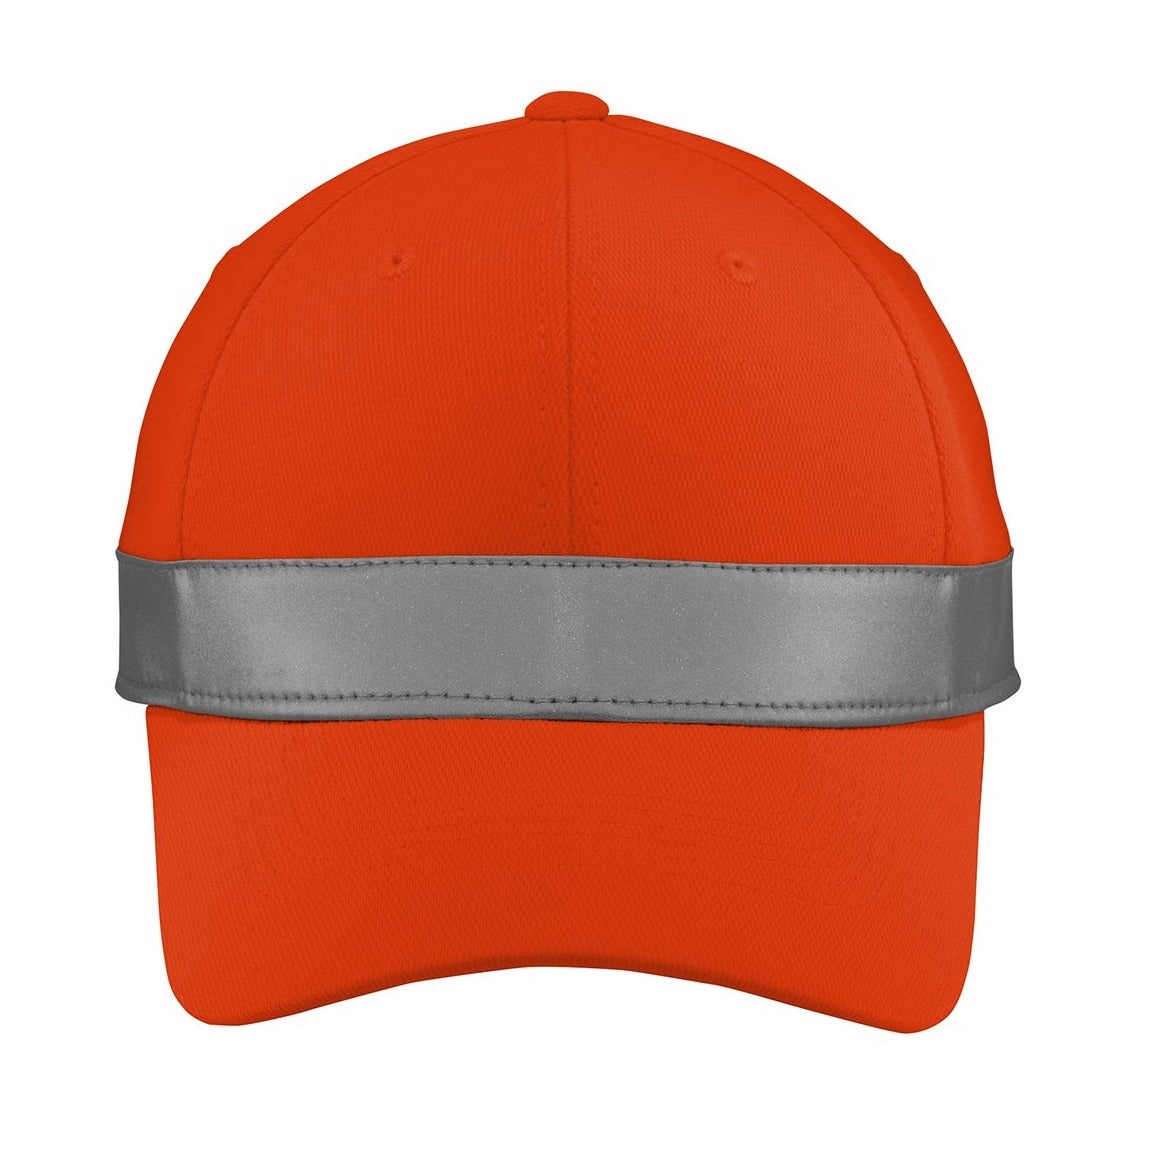 CS802 CornerStone ® ANSI 107 Safety Cap